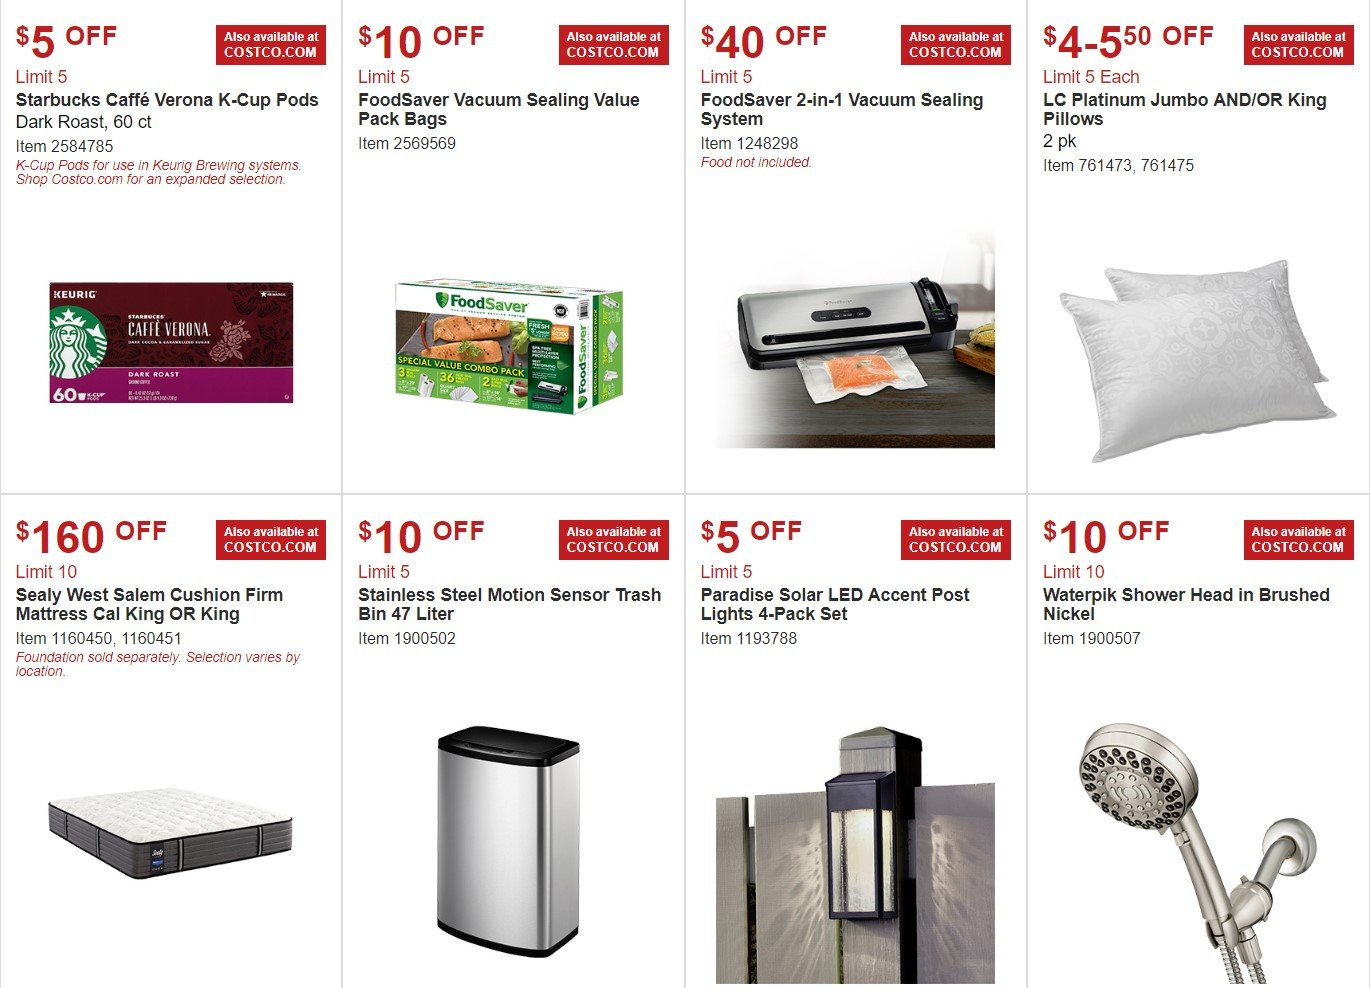 Costco Flyer - 02.06.2019 - 03.03.2019 - Sales products - bag, bin, cup, cushion, foundation, mattress, showerhead, starbucks, vacuum, head, pillow, solar led. Page 3.